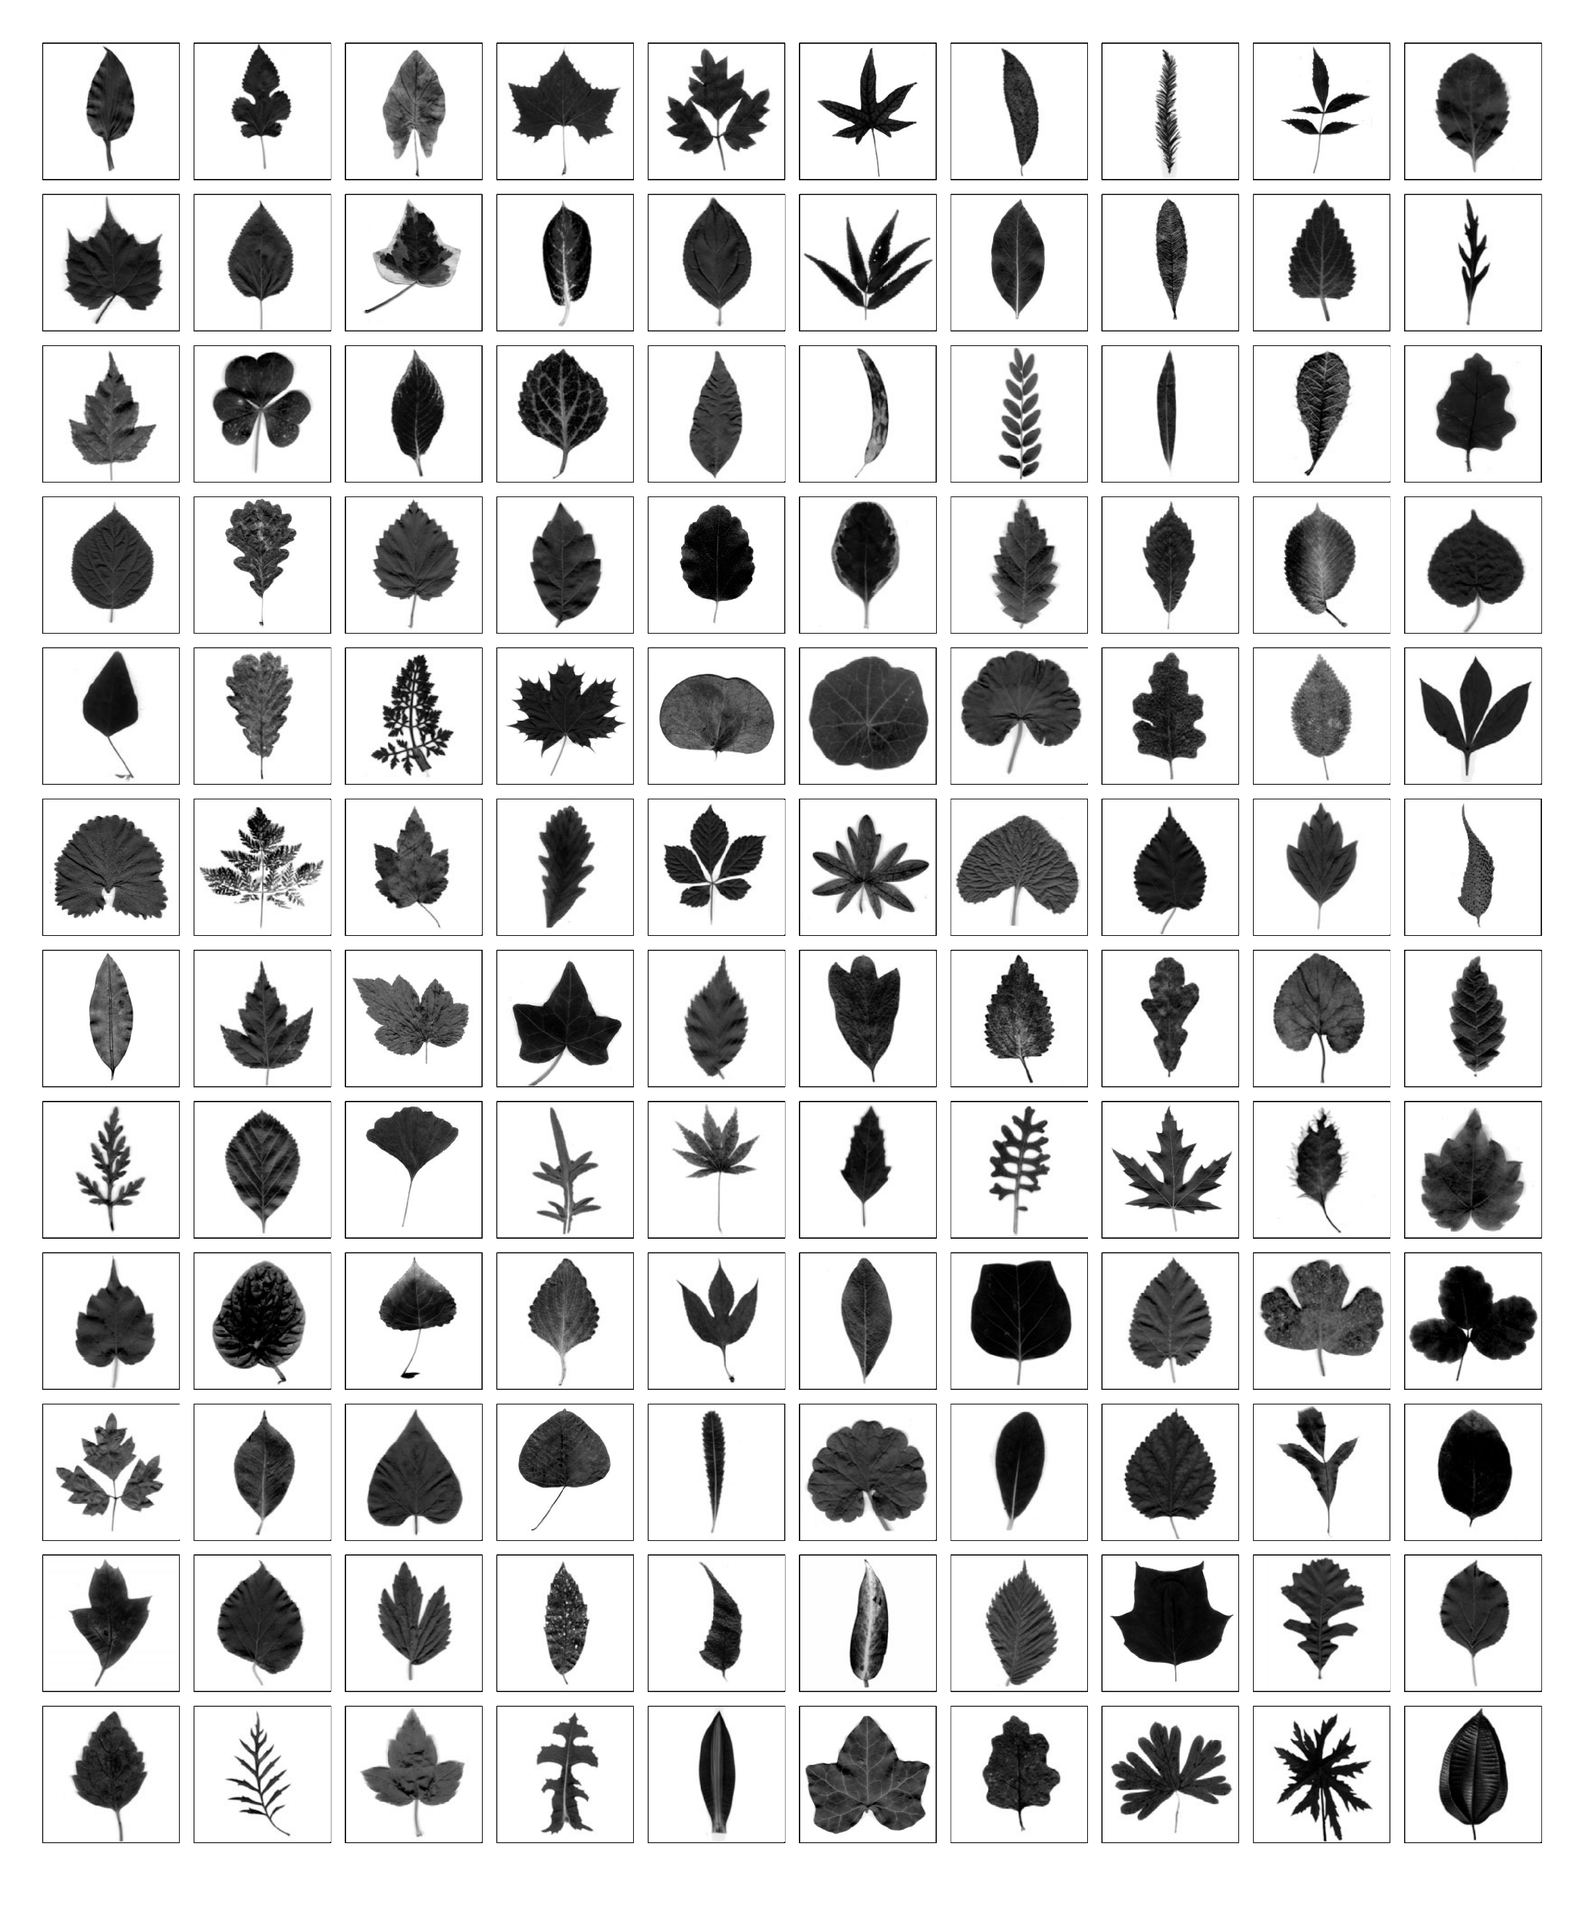 Examples of different kinds of leaves